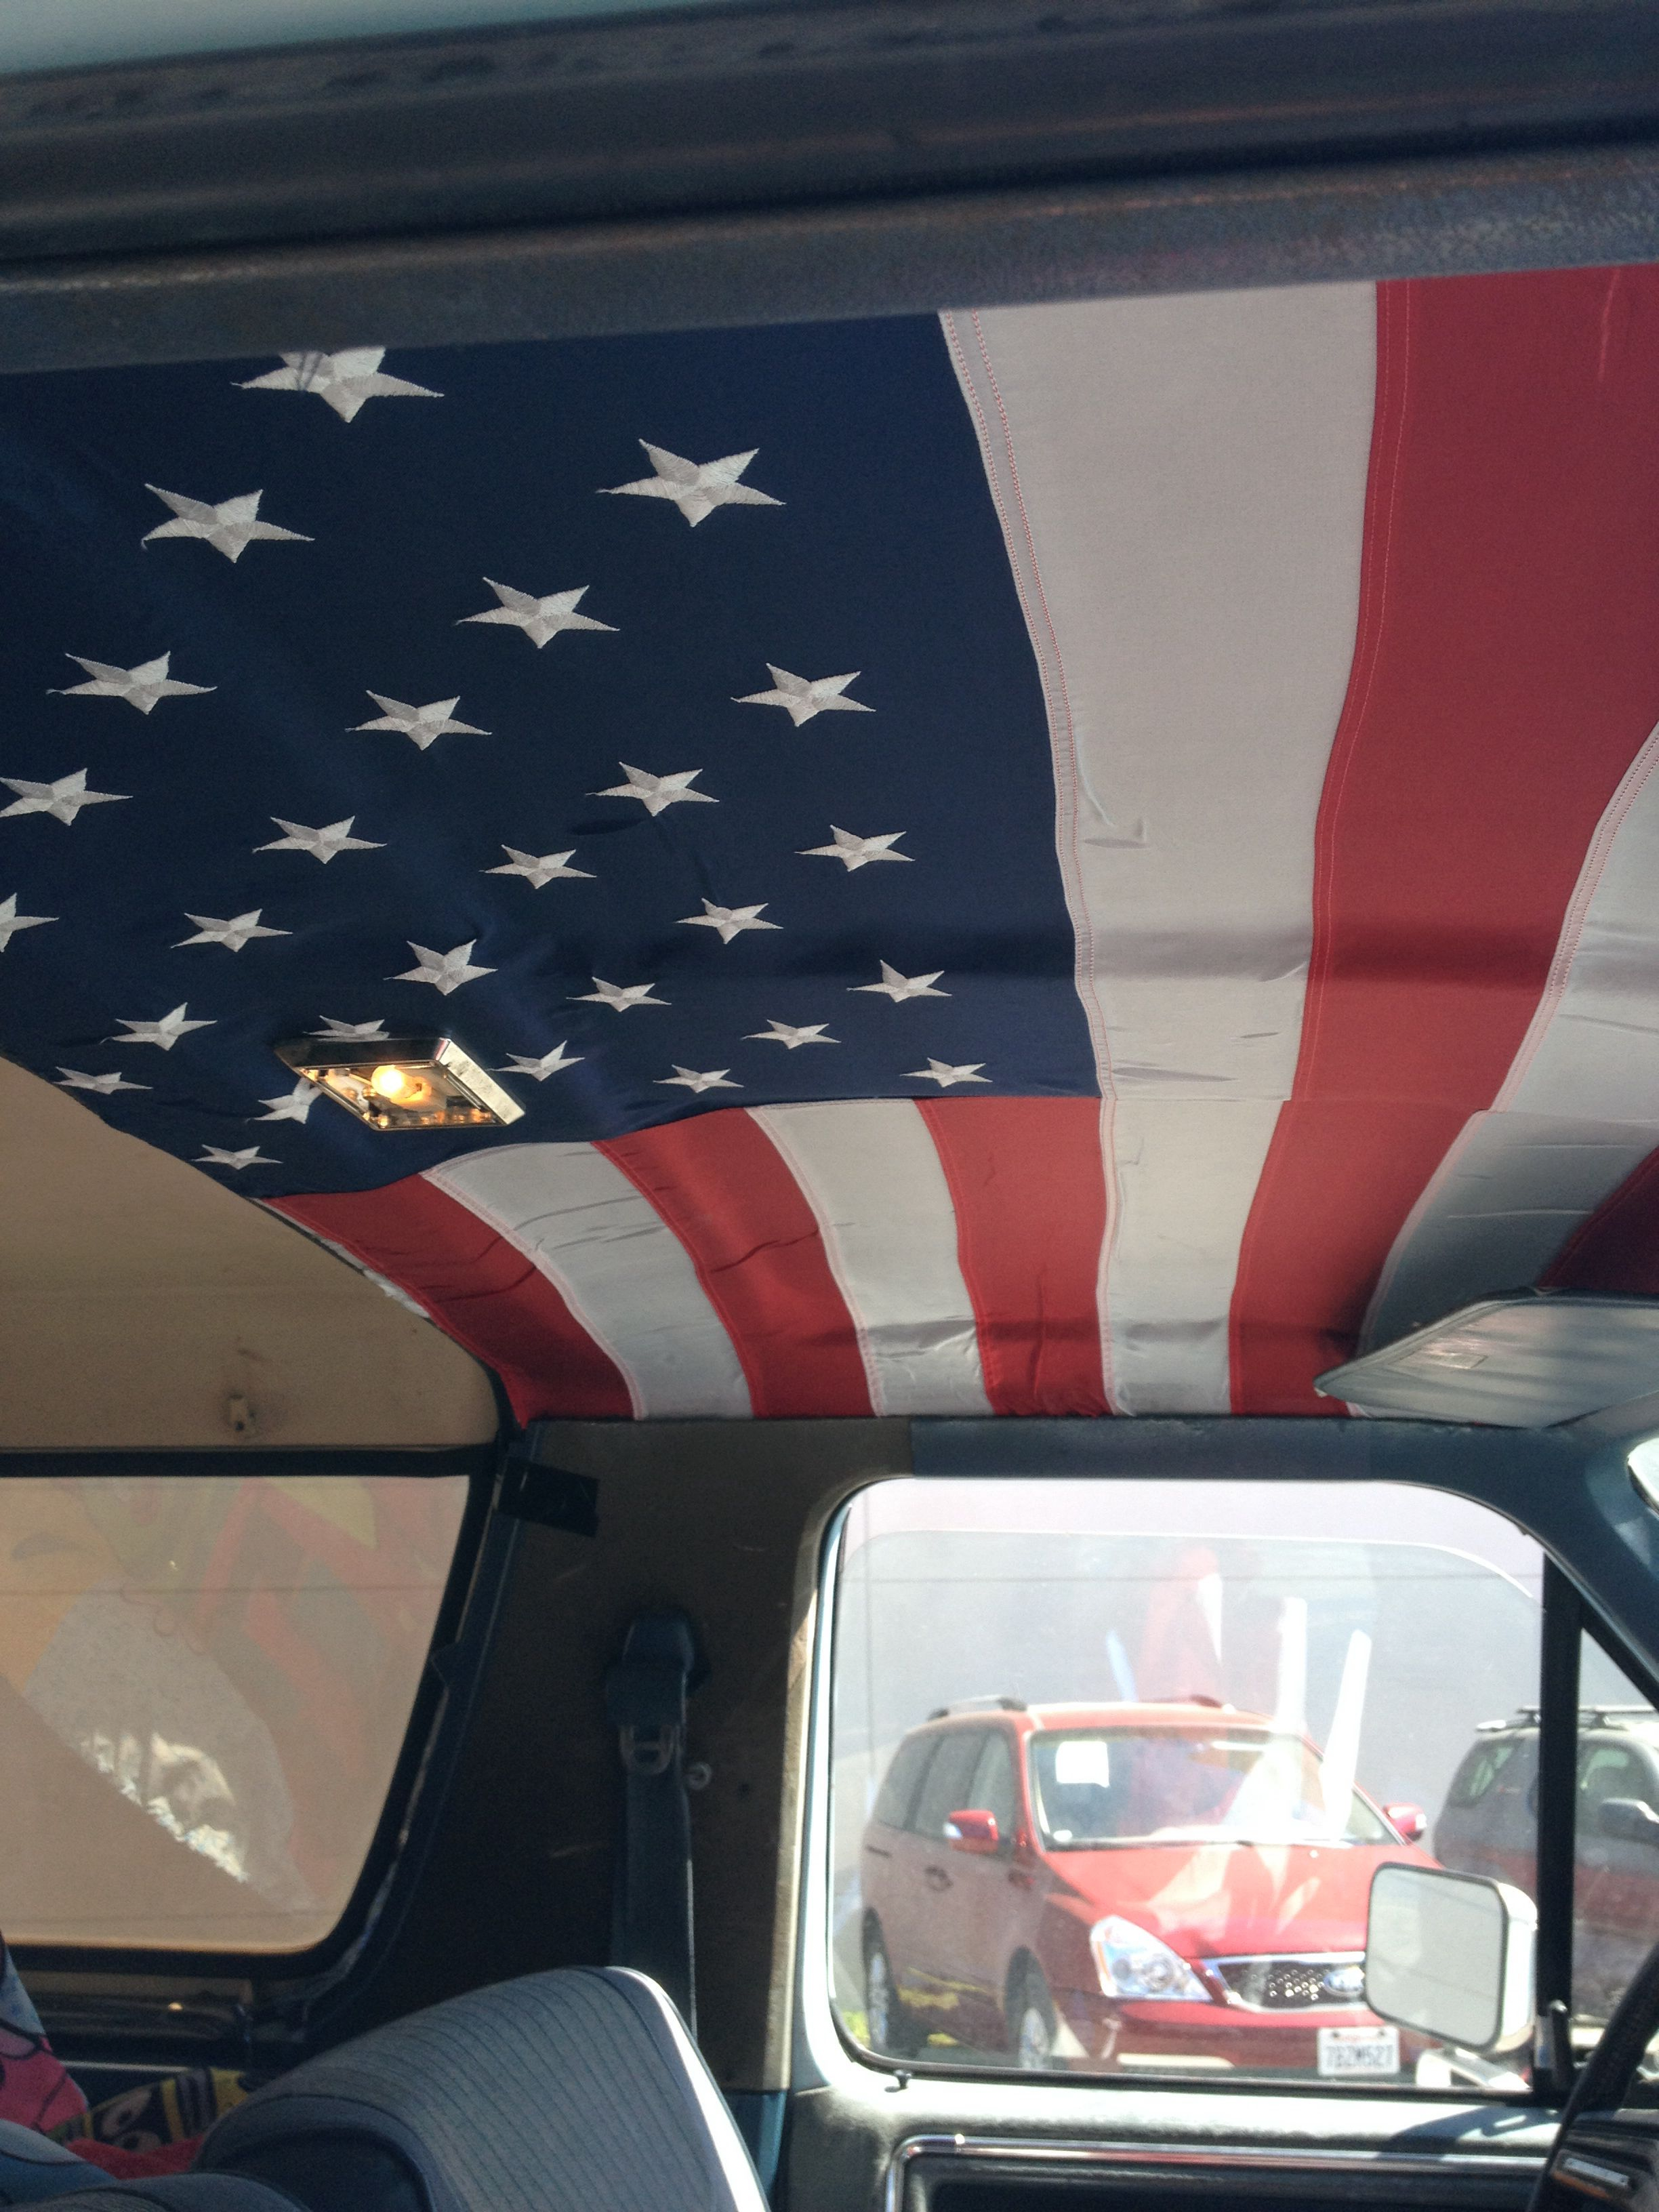 I Made A Custom Headliner For My Truck Today To Show My Patriotism